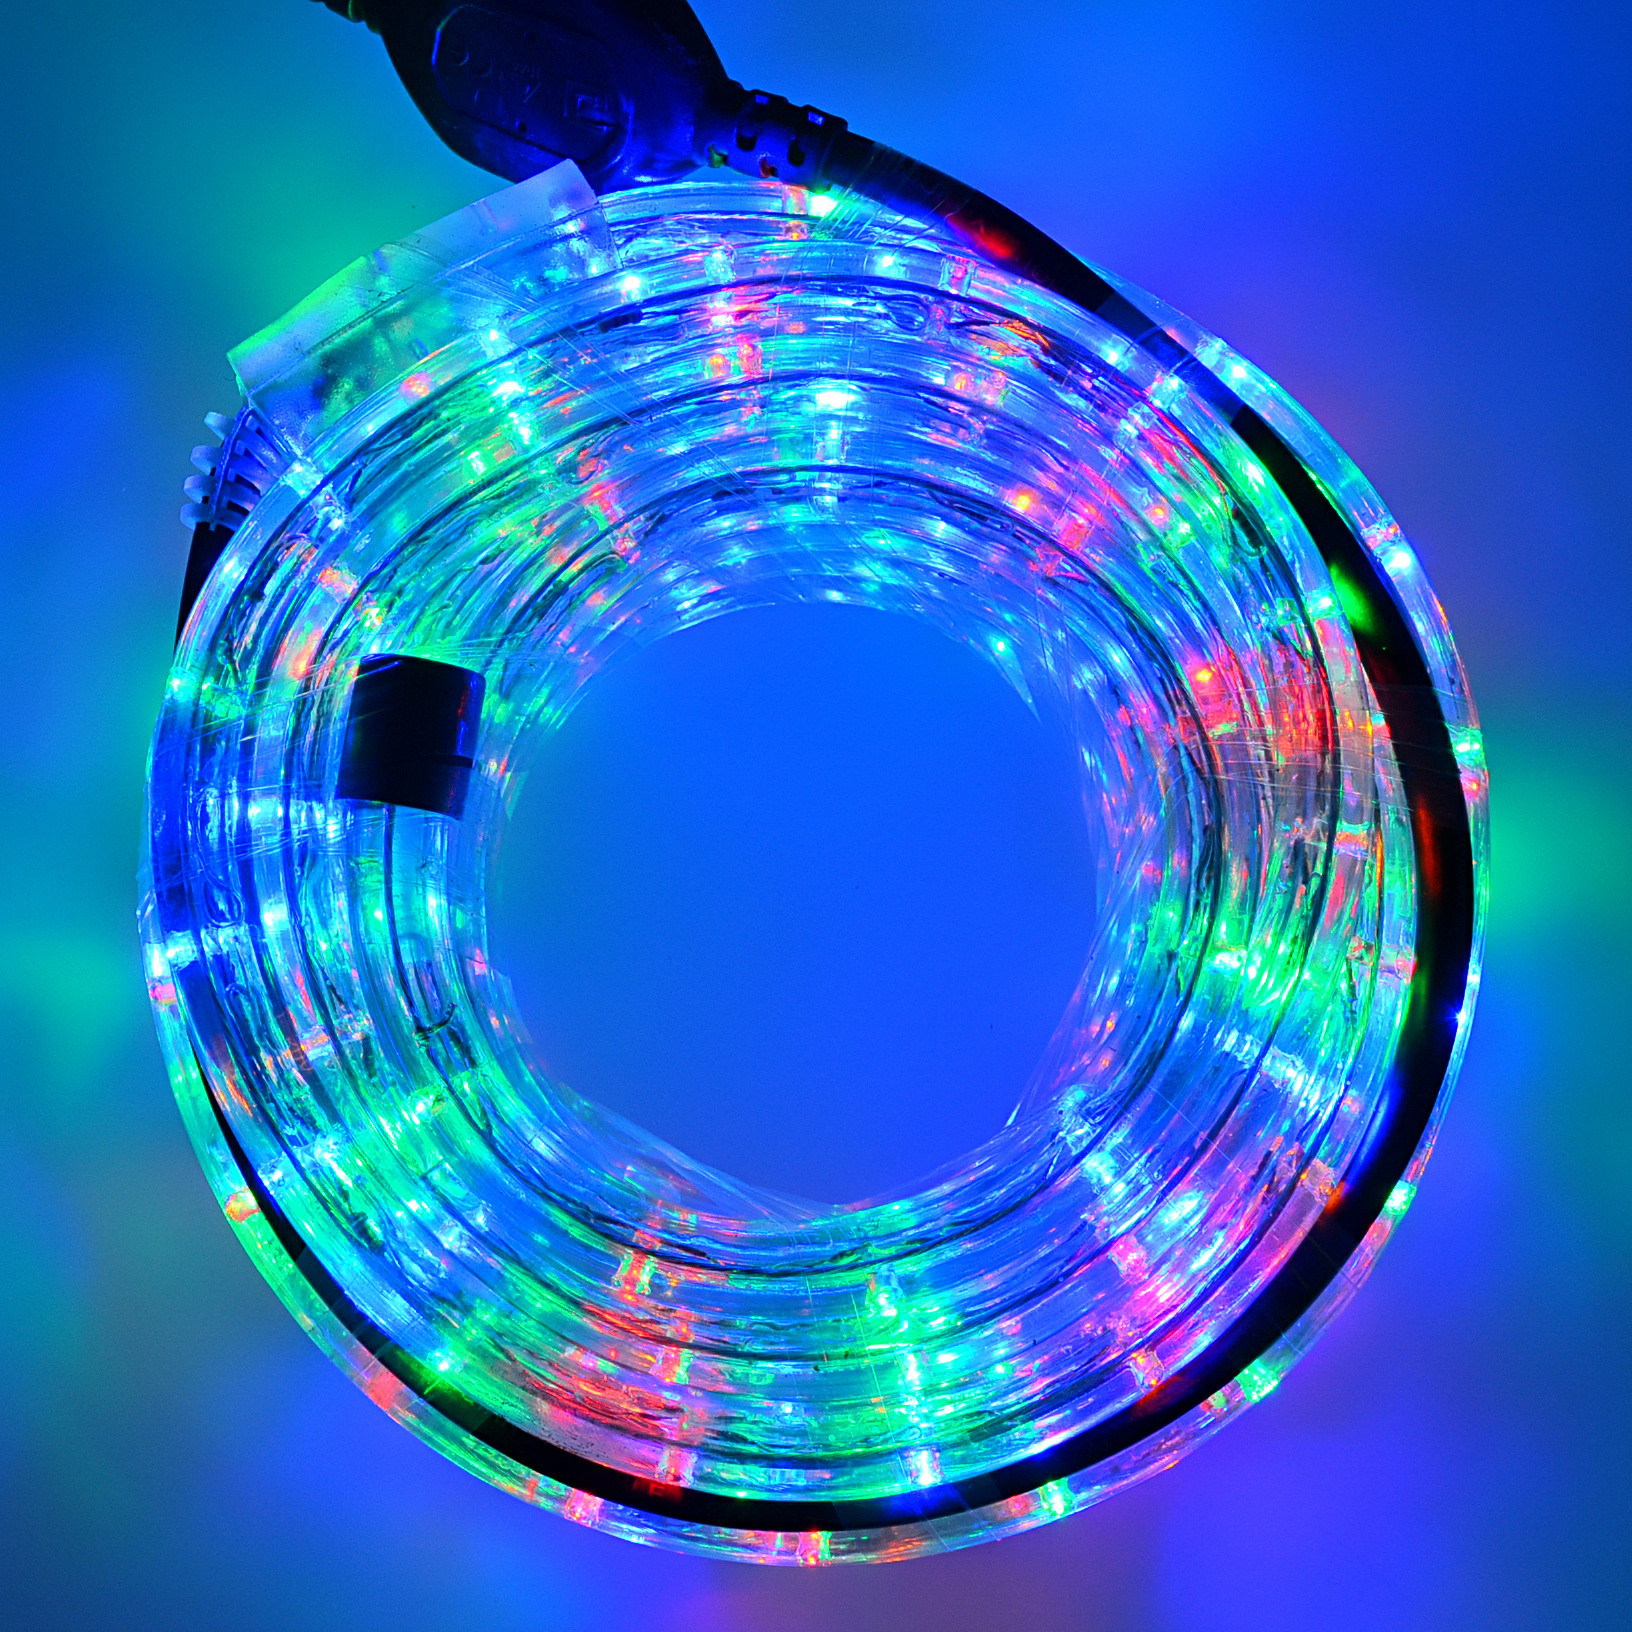 X'mas outdoor decoration 2 wire diameter 13MM round strip 110V/220V dimmable flex led rope light